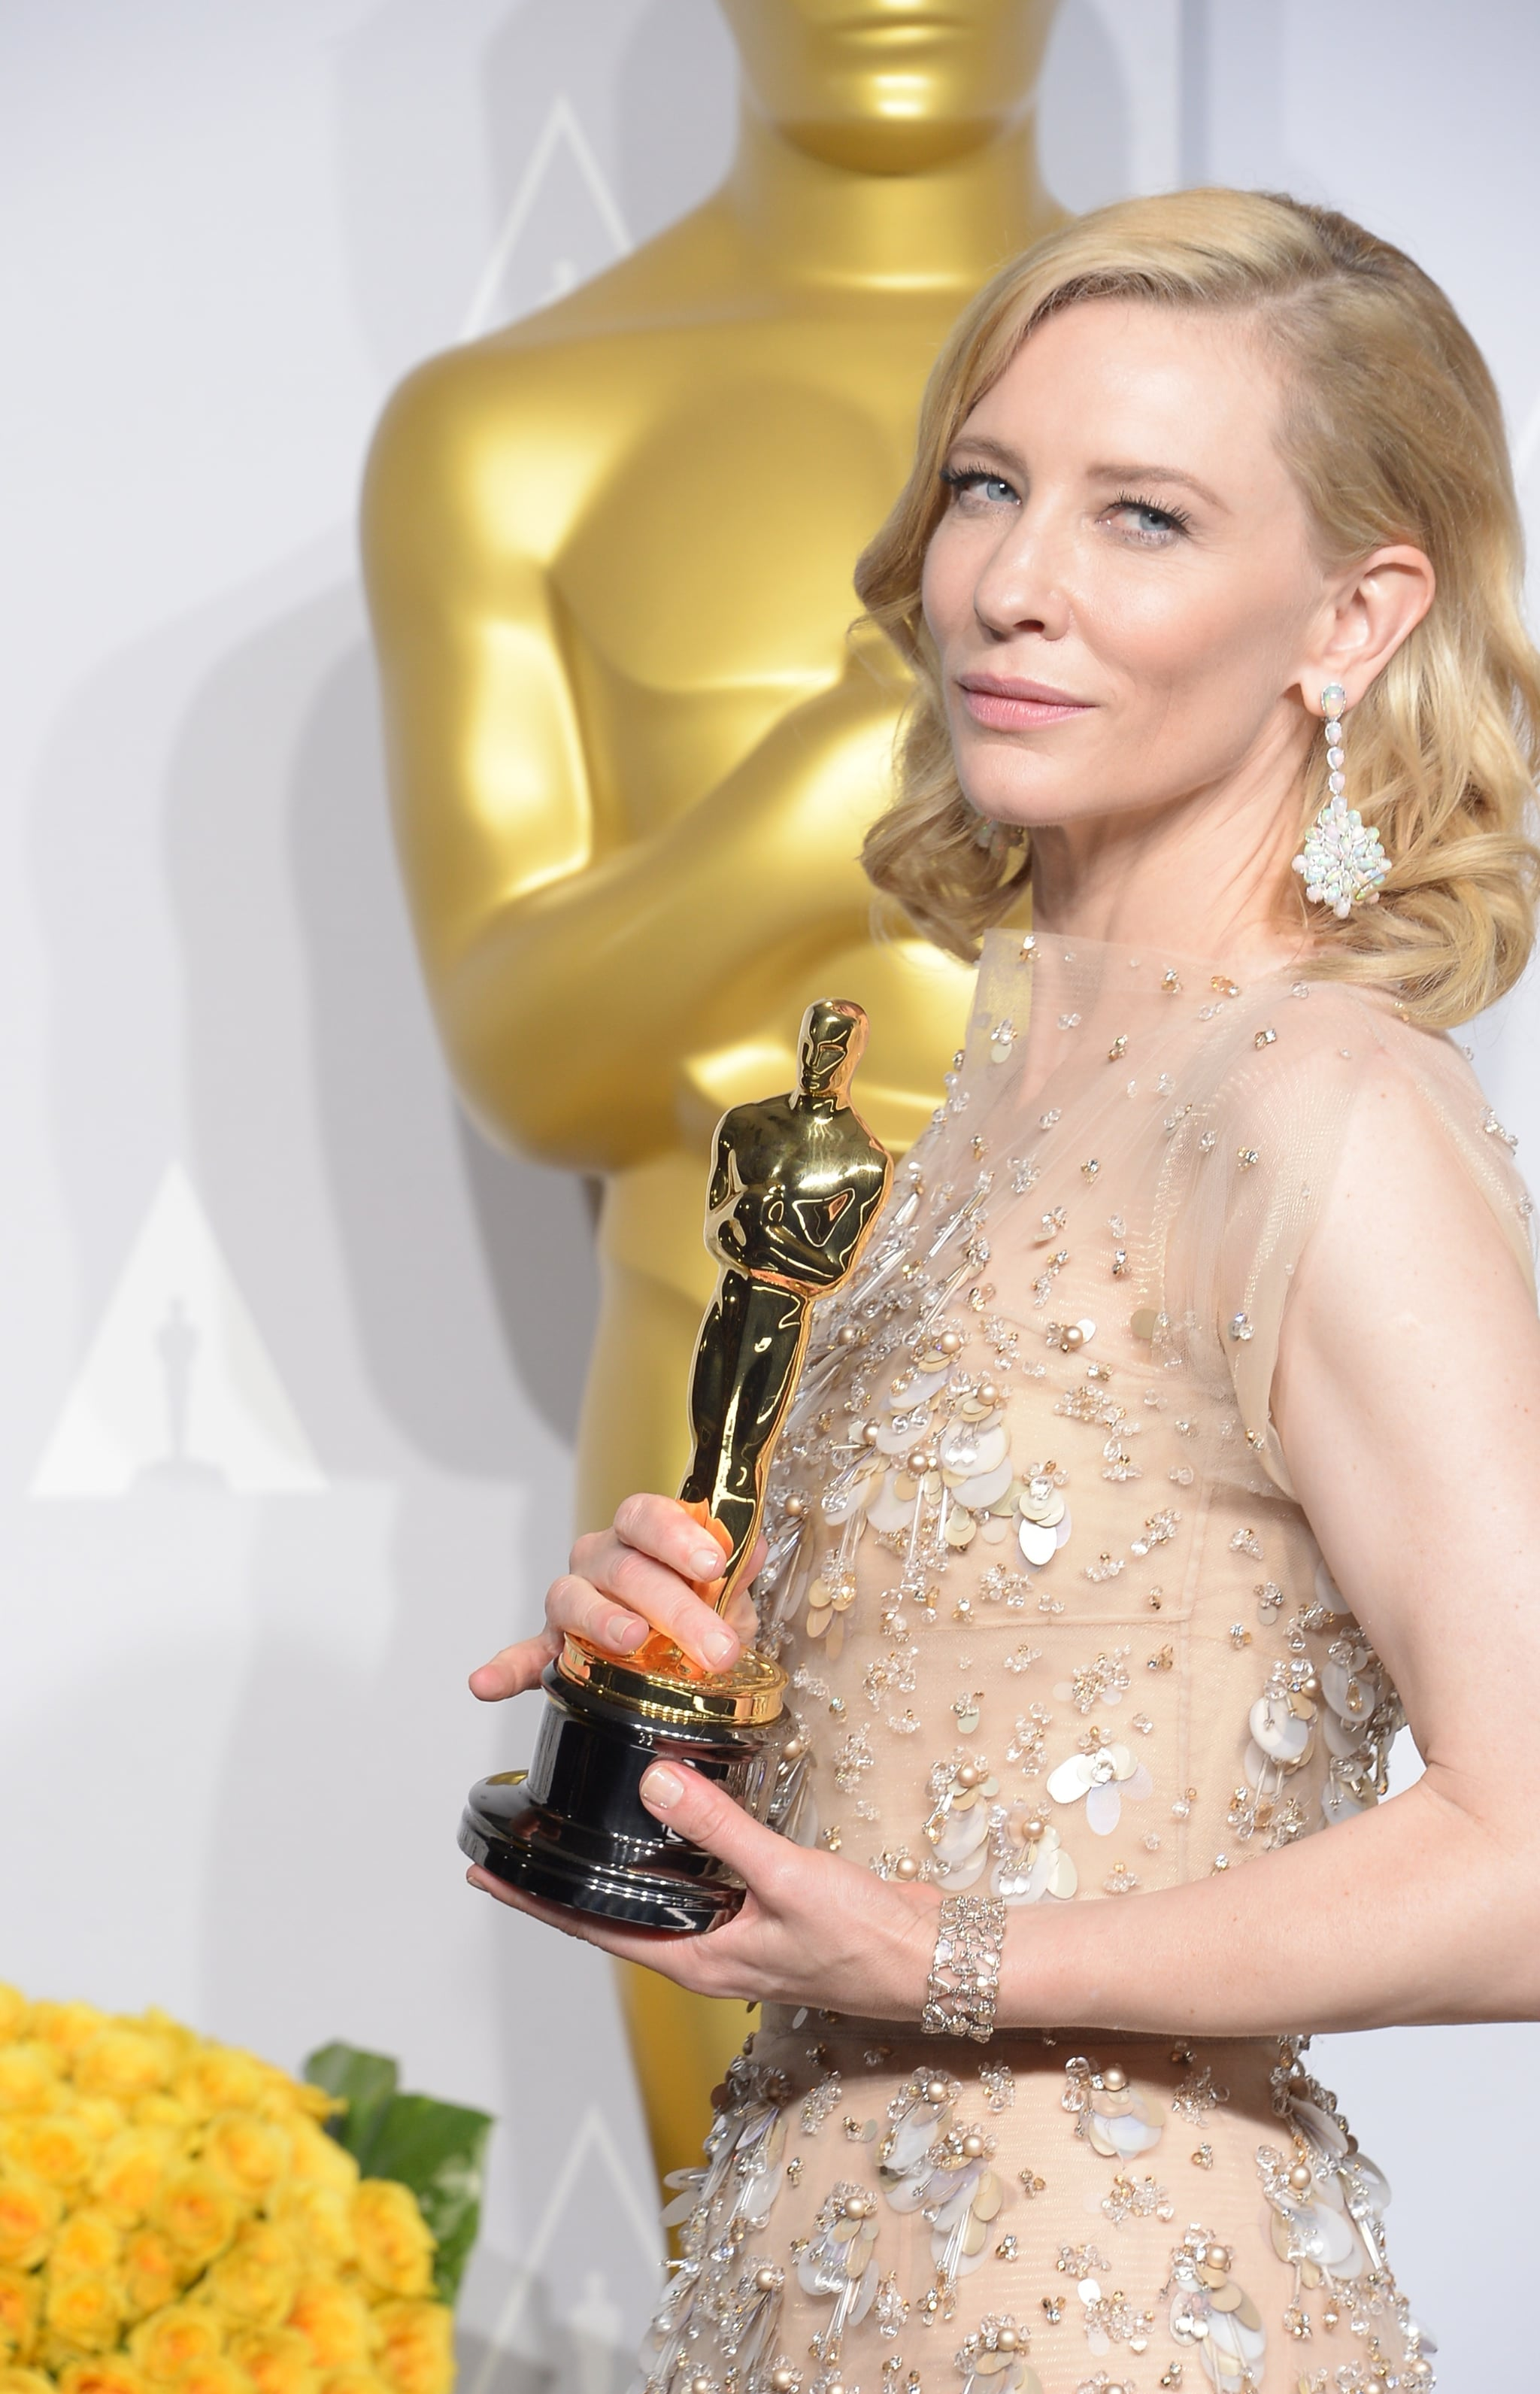 Cate Blanchett struck a pose with her best actress Academy Award for Blue Jasmine.